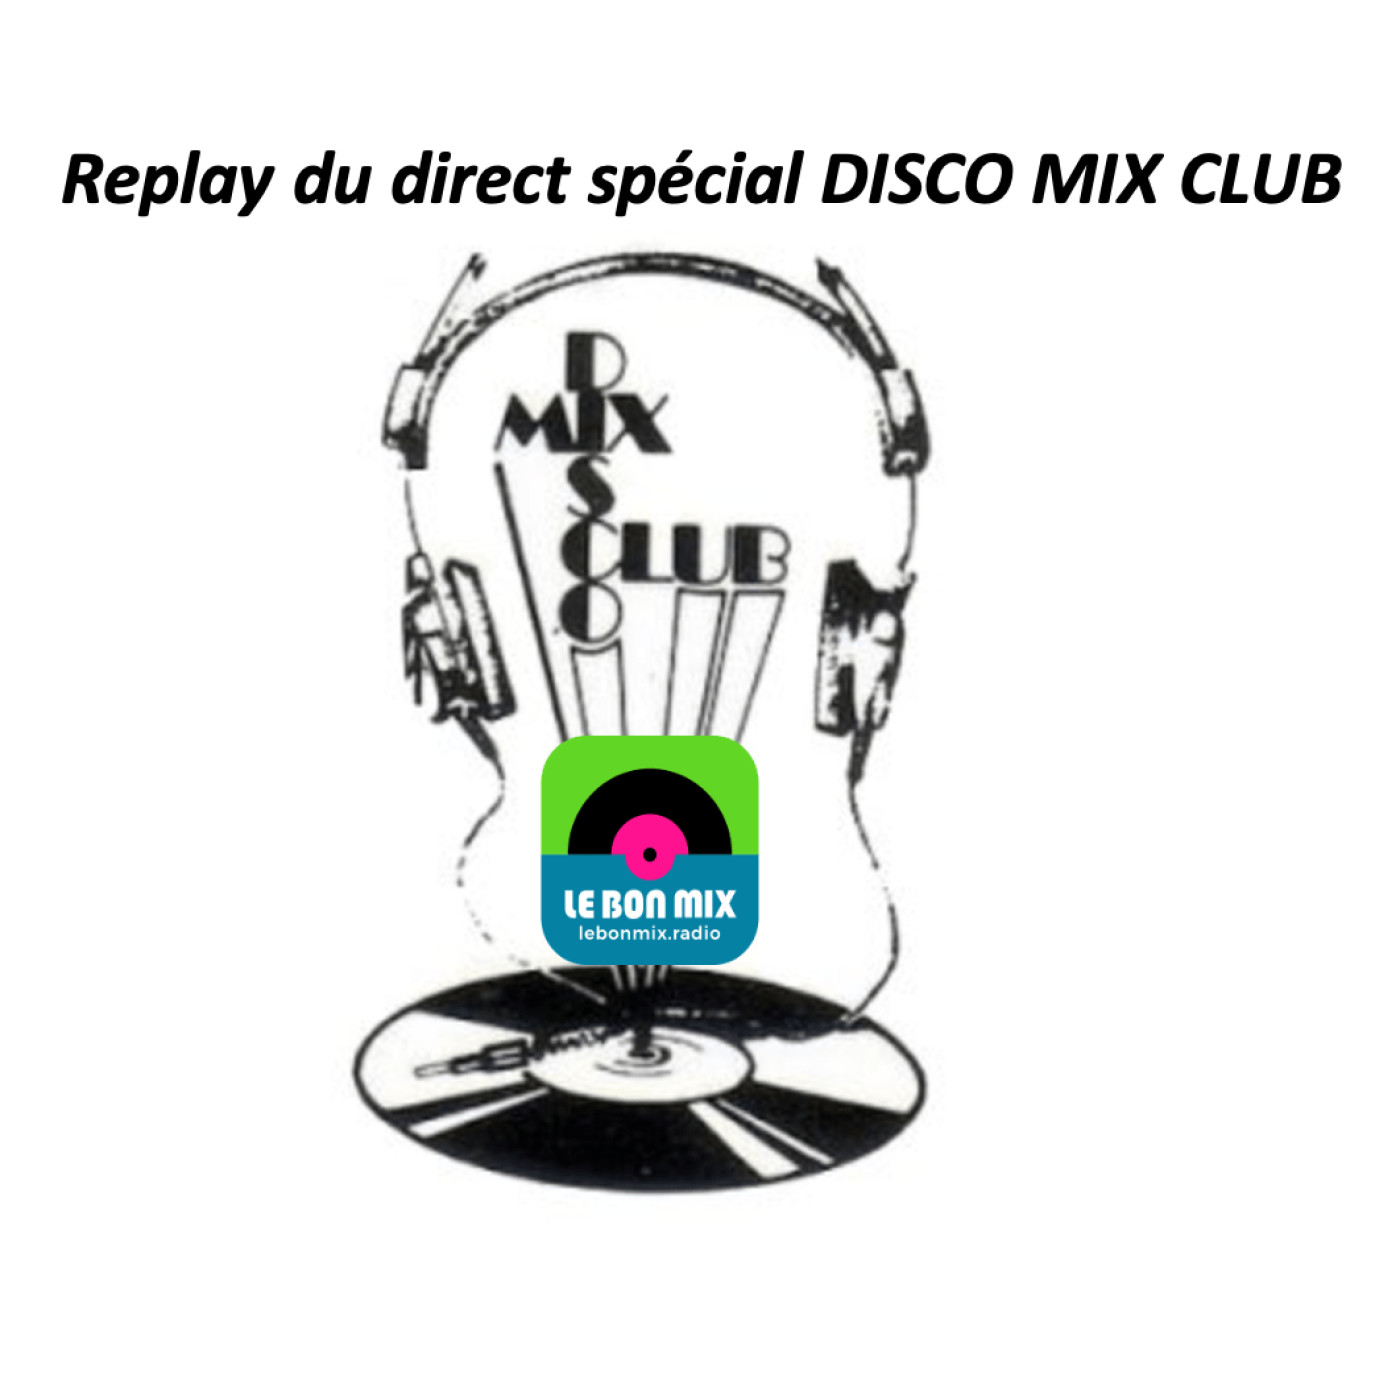 DISCO MIX CLUB - Direct du 09 01 21